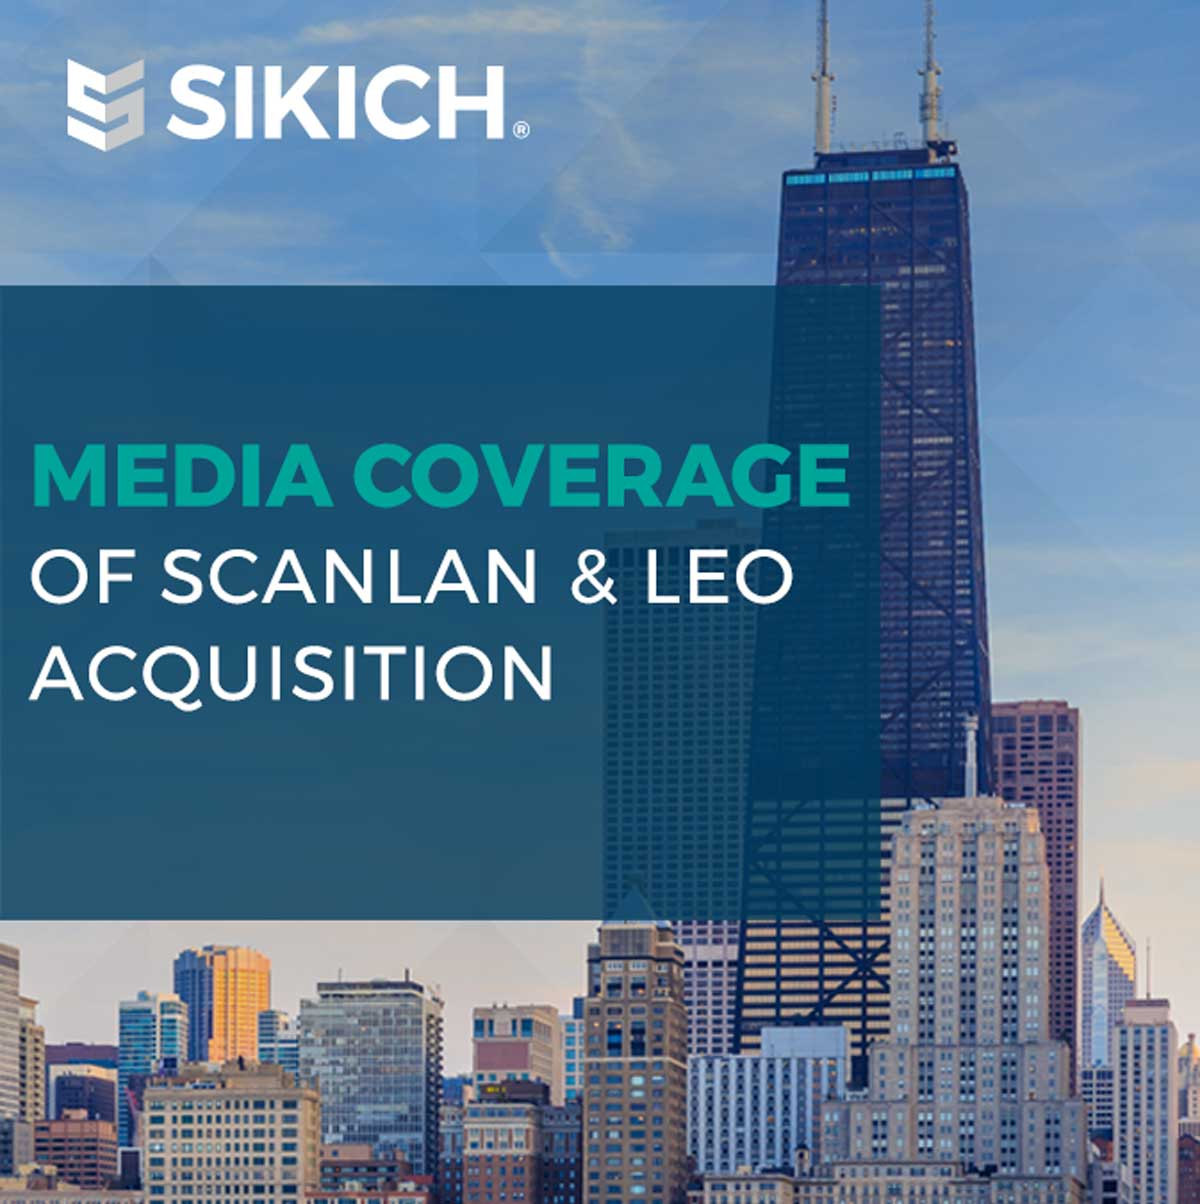 text reads Media coverage of Scanlan & Leo acquisition and the background image is of a Chicago skyline